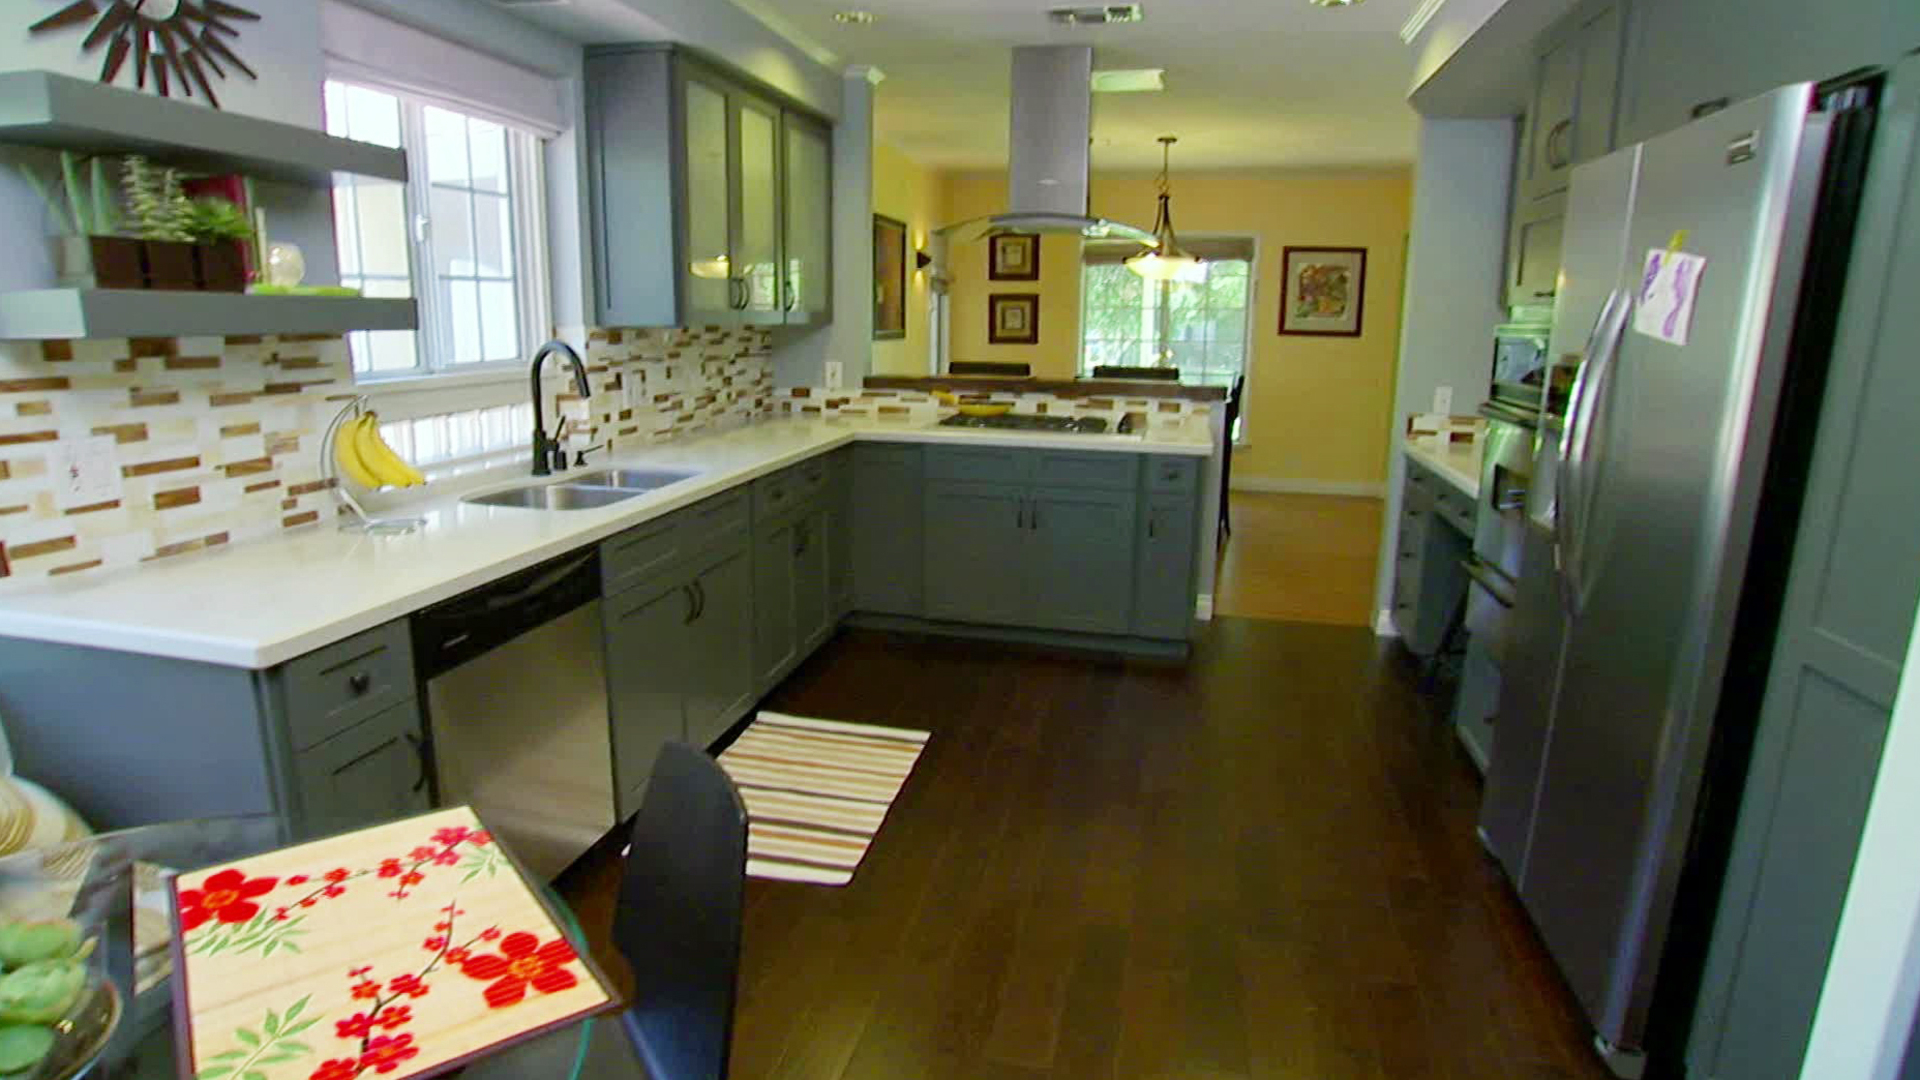 Modern Colonial Kitchen Design: Pictures, Ideas & Tips From Hgtv | Hgtv within Colonial Kitchen Design